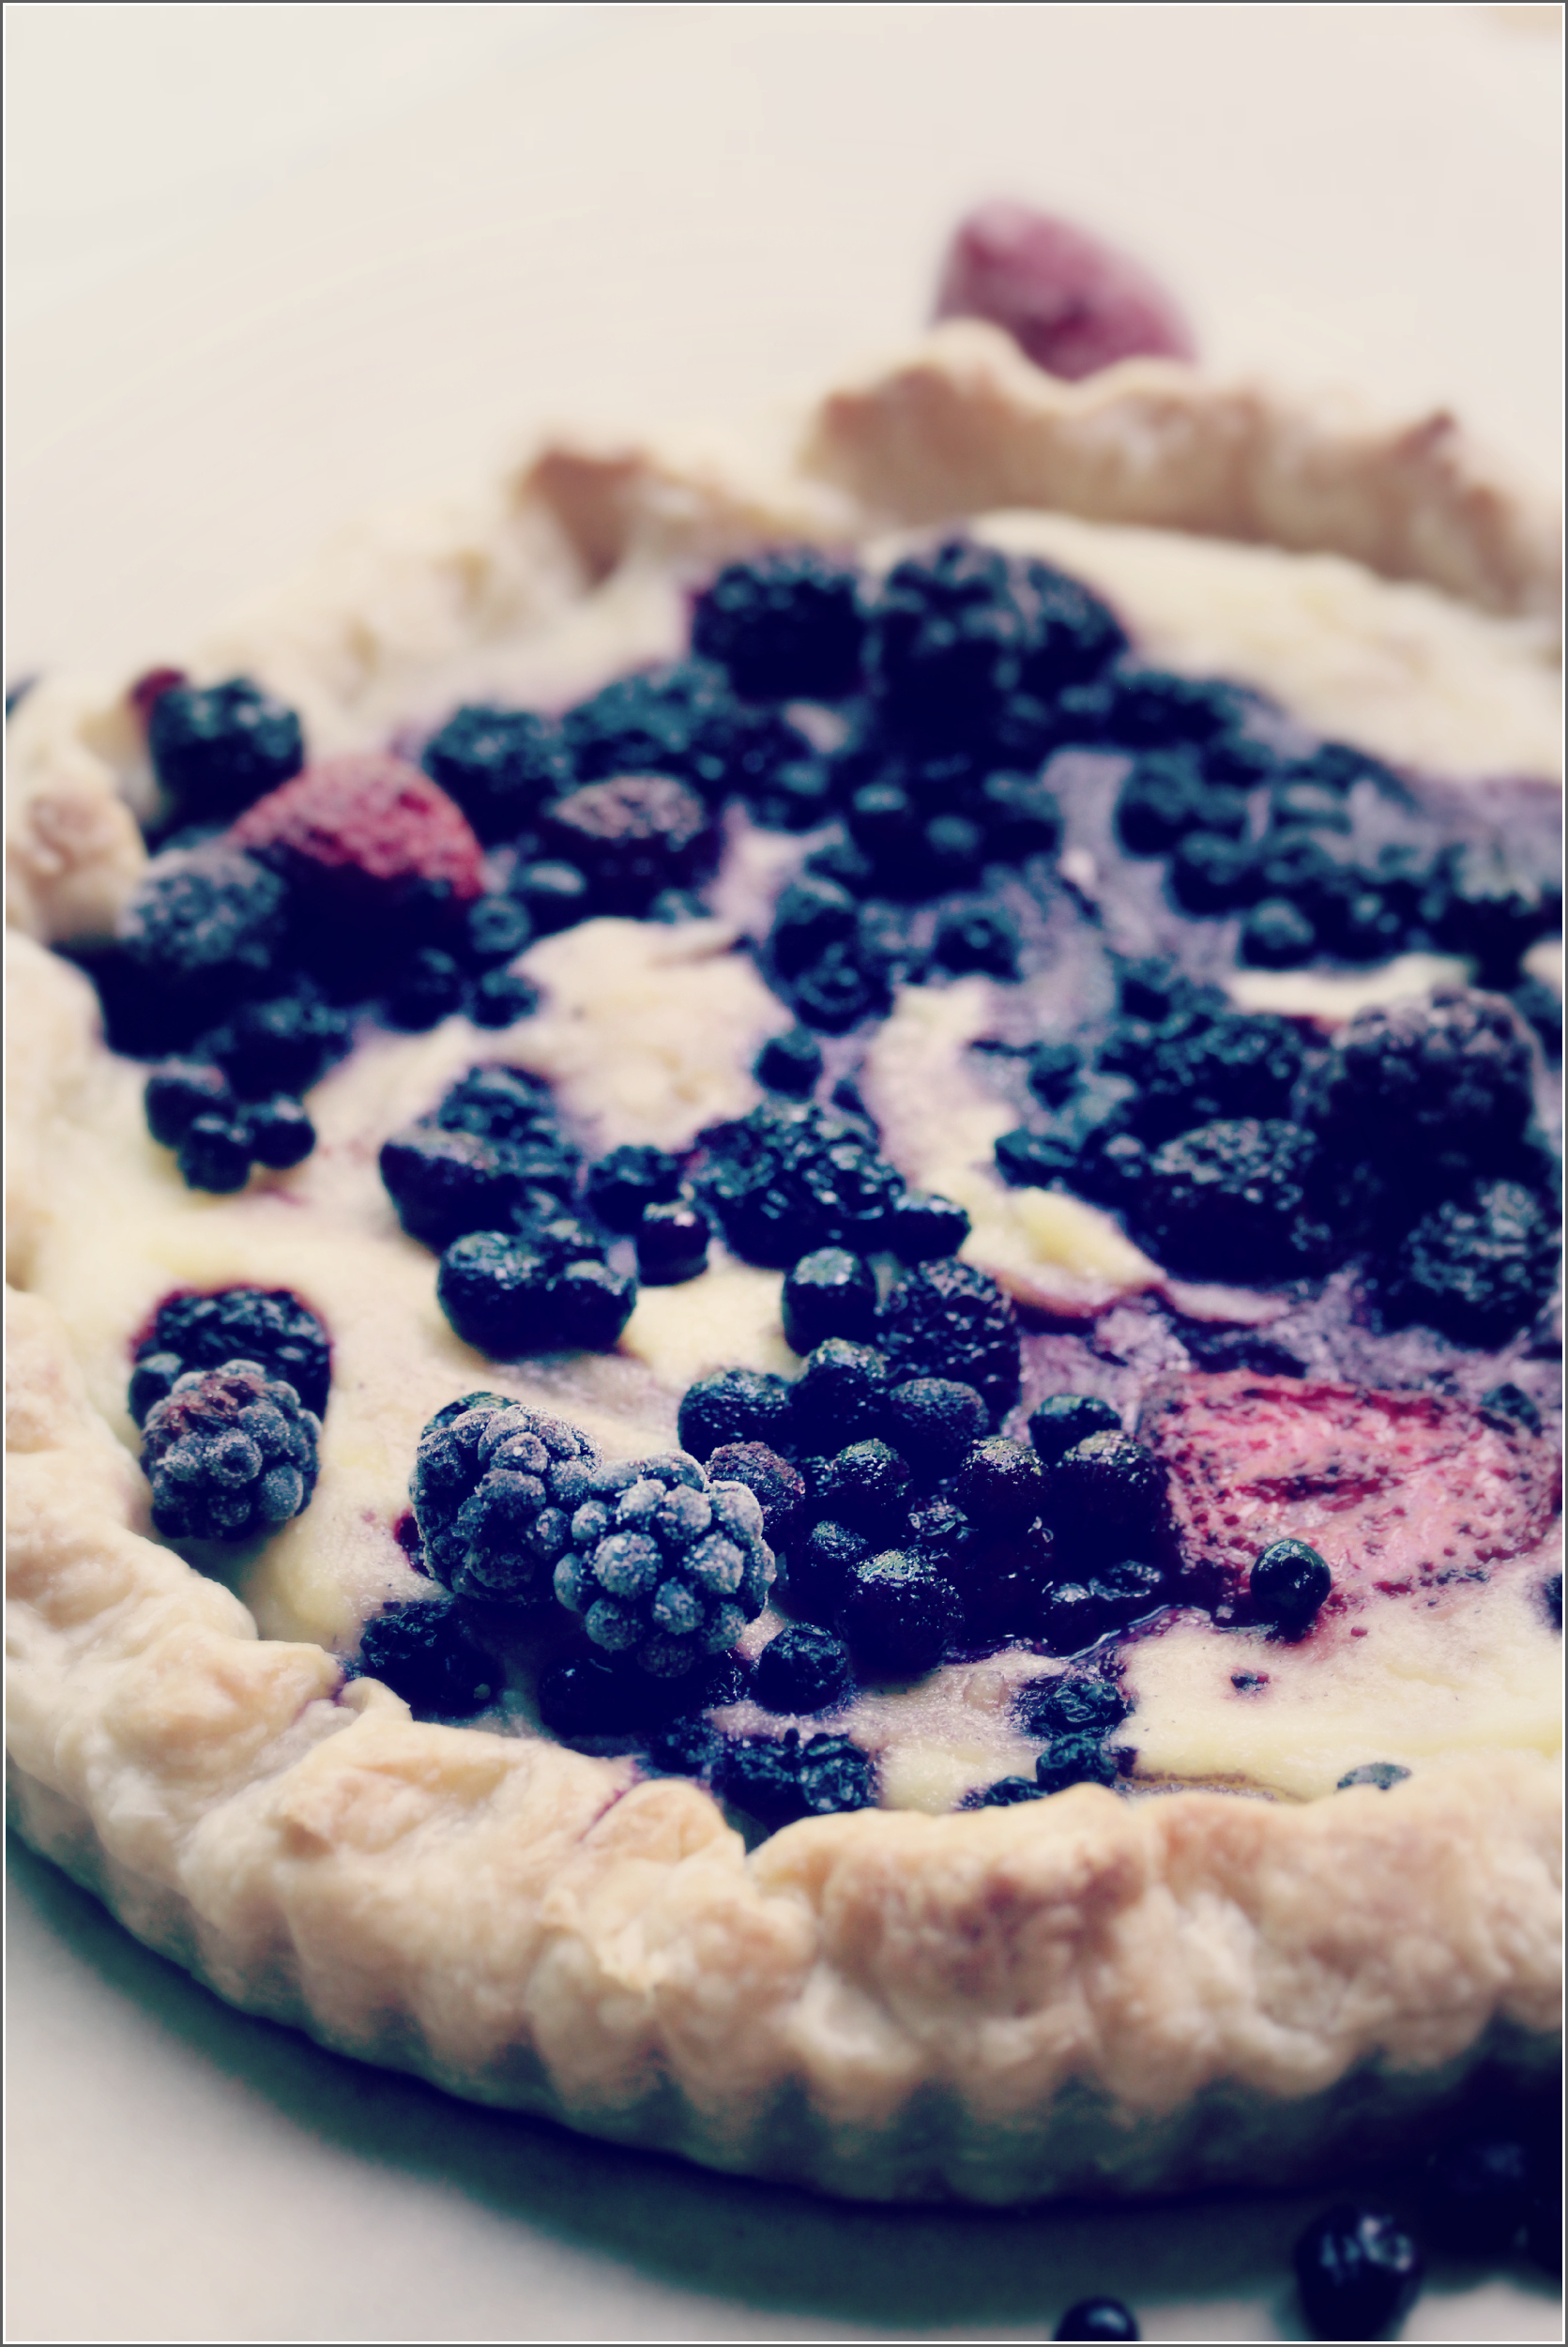 Mixed Berry and Semolina Tart